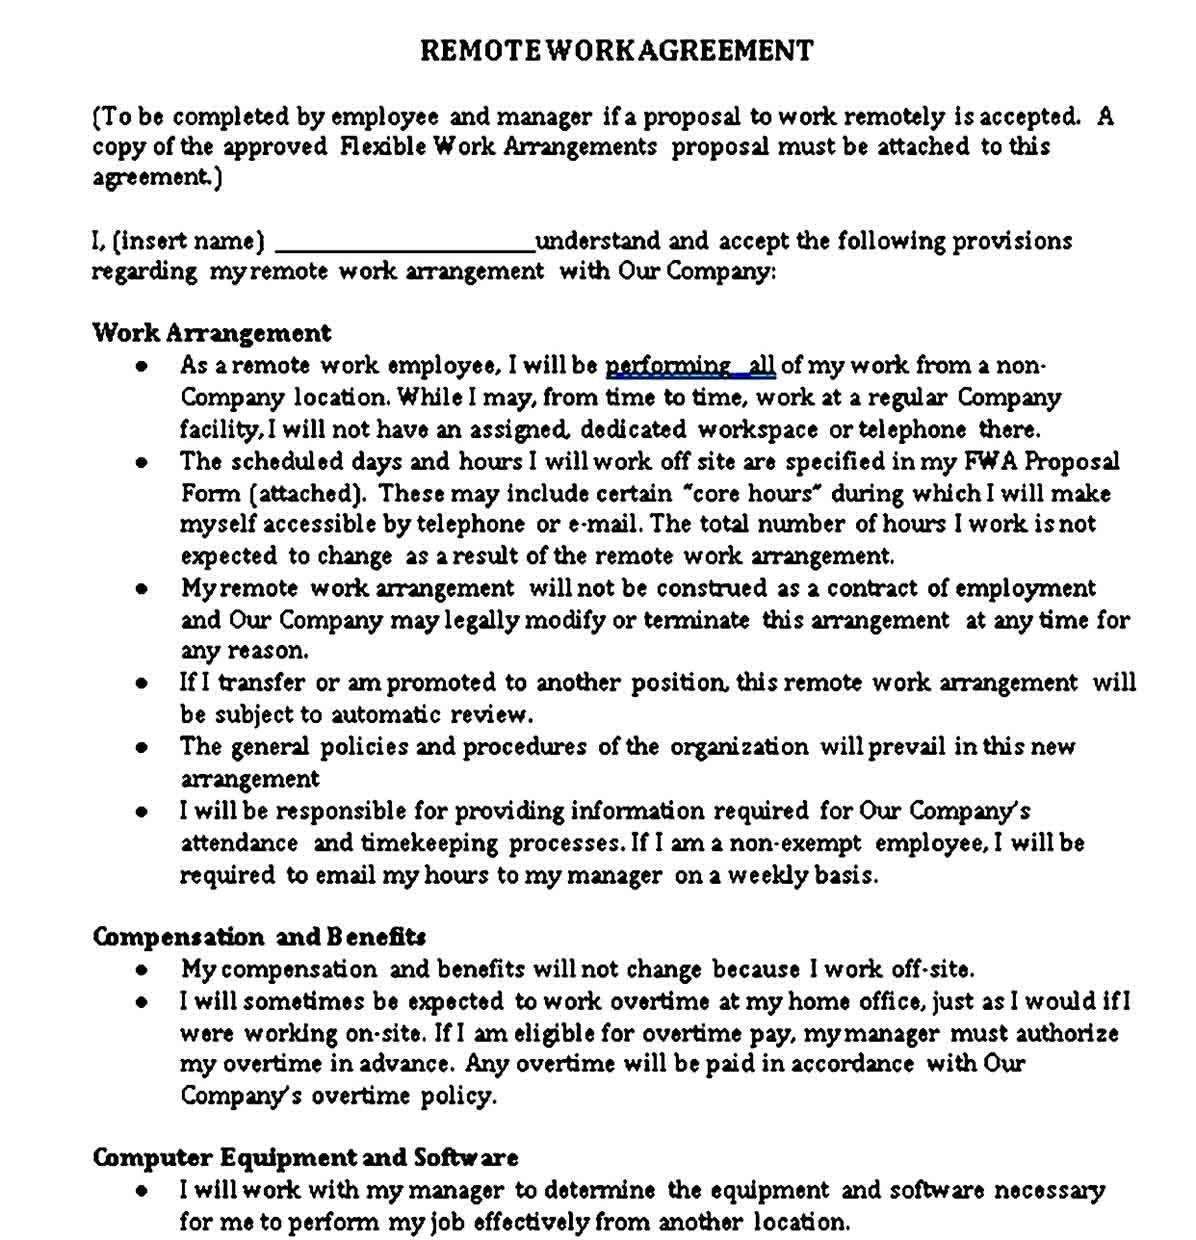 Work Agreement Sample Template In 2021 Work Agreement Agreement Contract Template Work from home agreement template